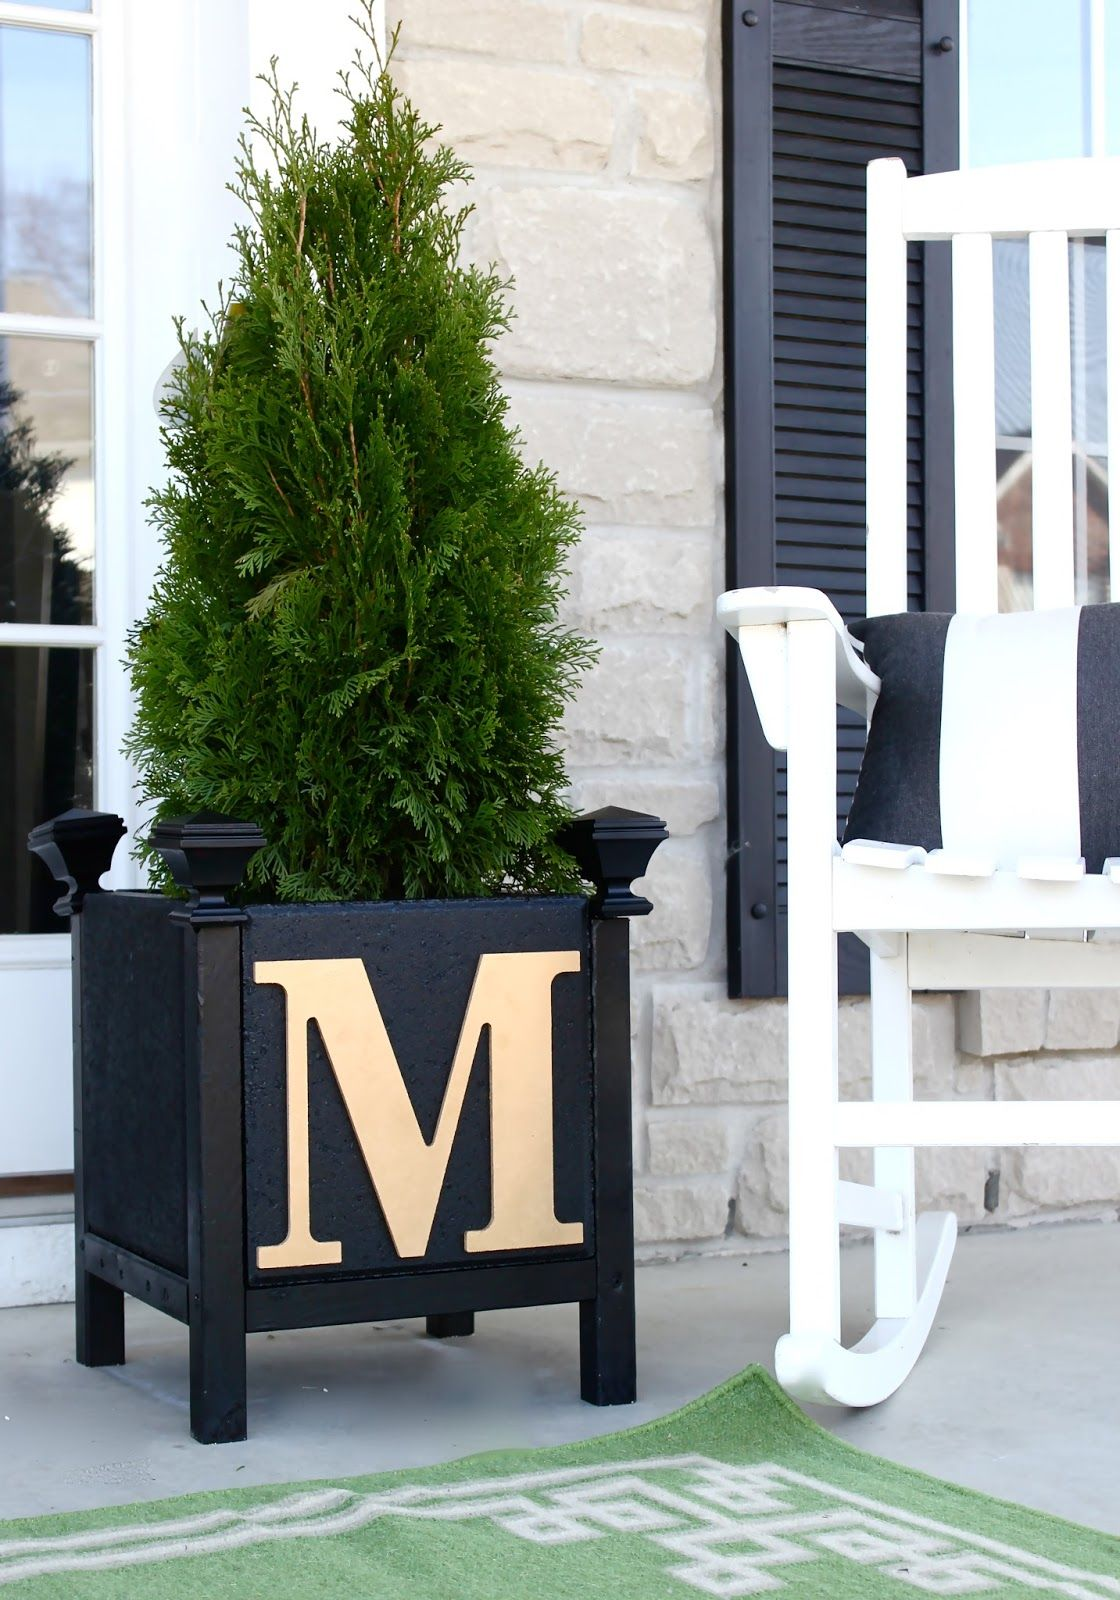 Build A Home Depot Dih Workshop Modern Paver Planter Free And Easy Diy Project And Furniture Plans Pavers Diy Diy Backyard Diy Planters